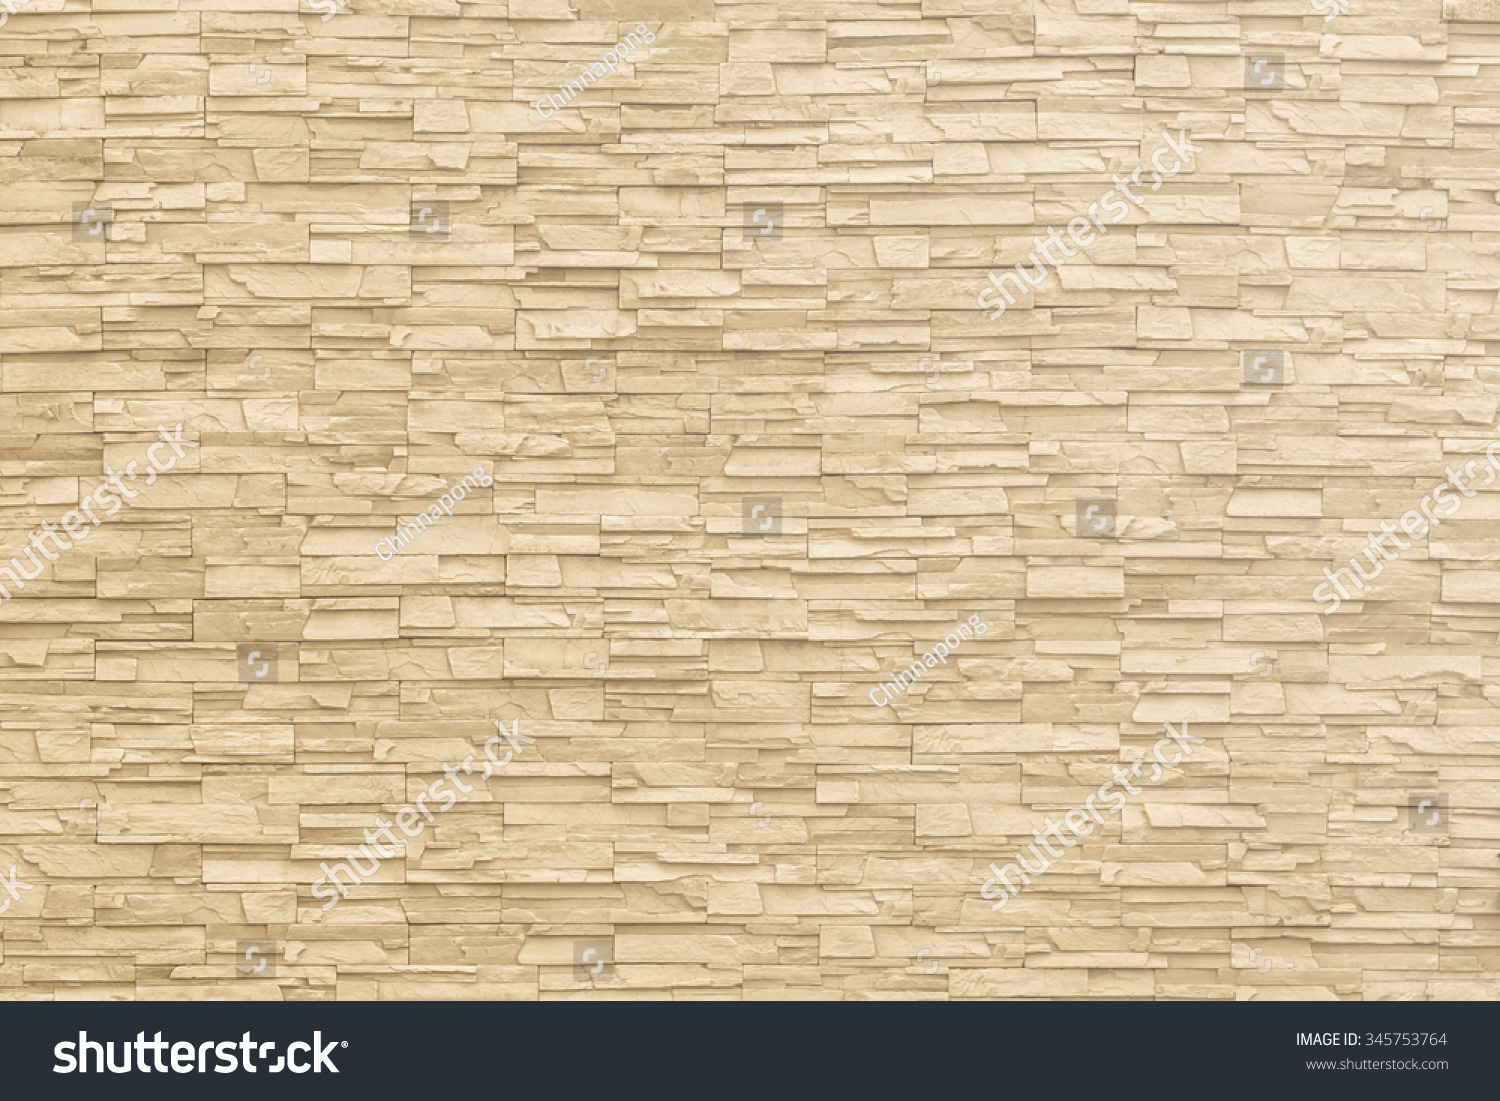 Marble Brick Stone Tile Wall Texture Stock Photo 345753764